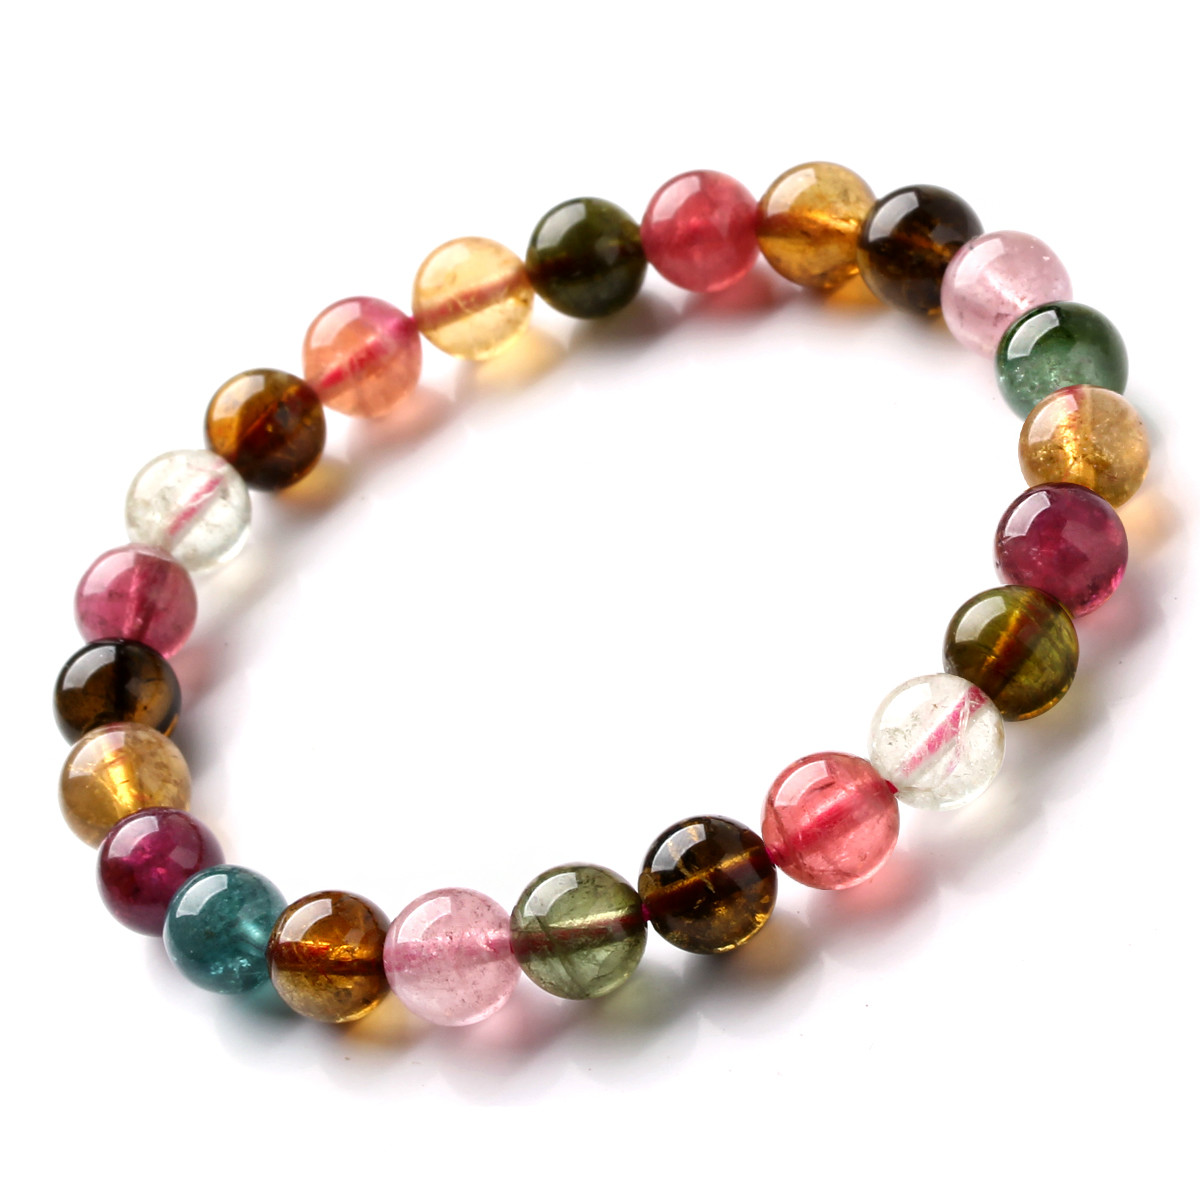 Tourmaline Bracelet Female Color Tourmaline Single-loop Hand StringTourmaline Bracelet Female Color Tourmaline Single-loop Hand String